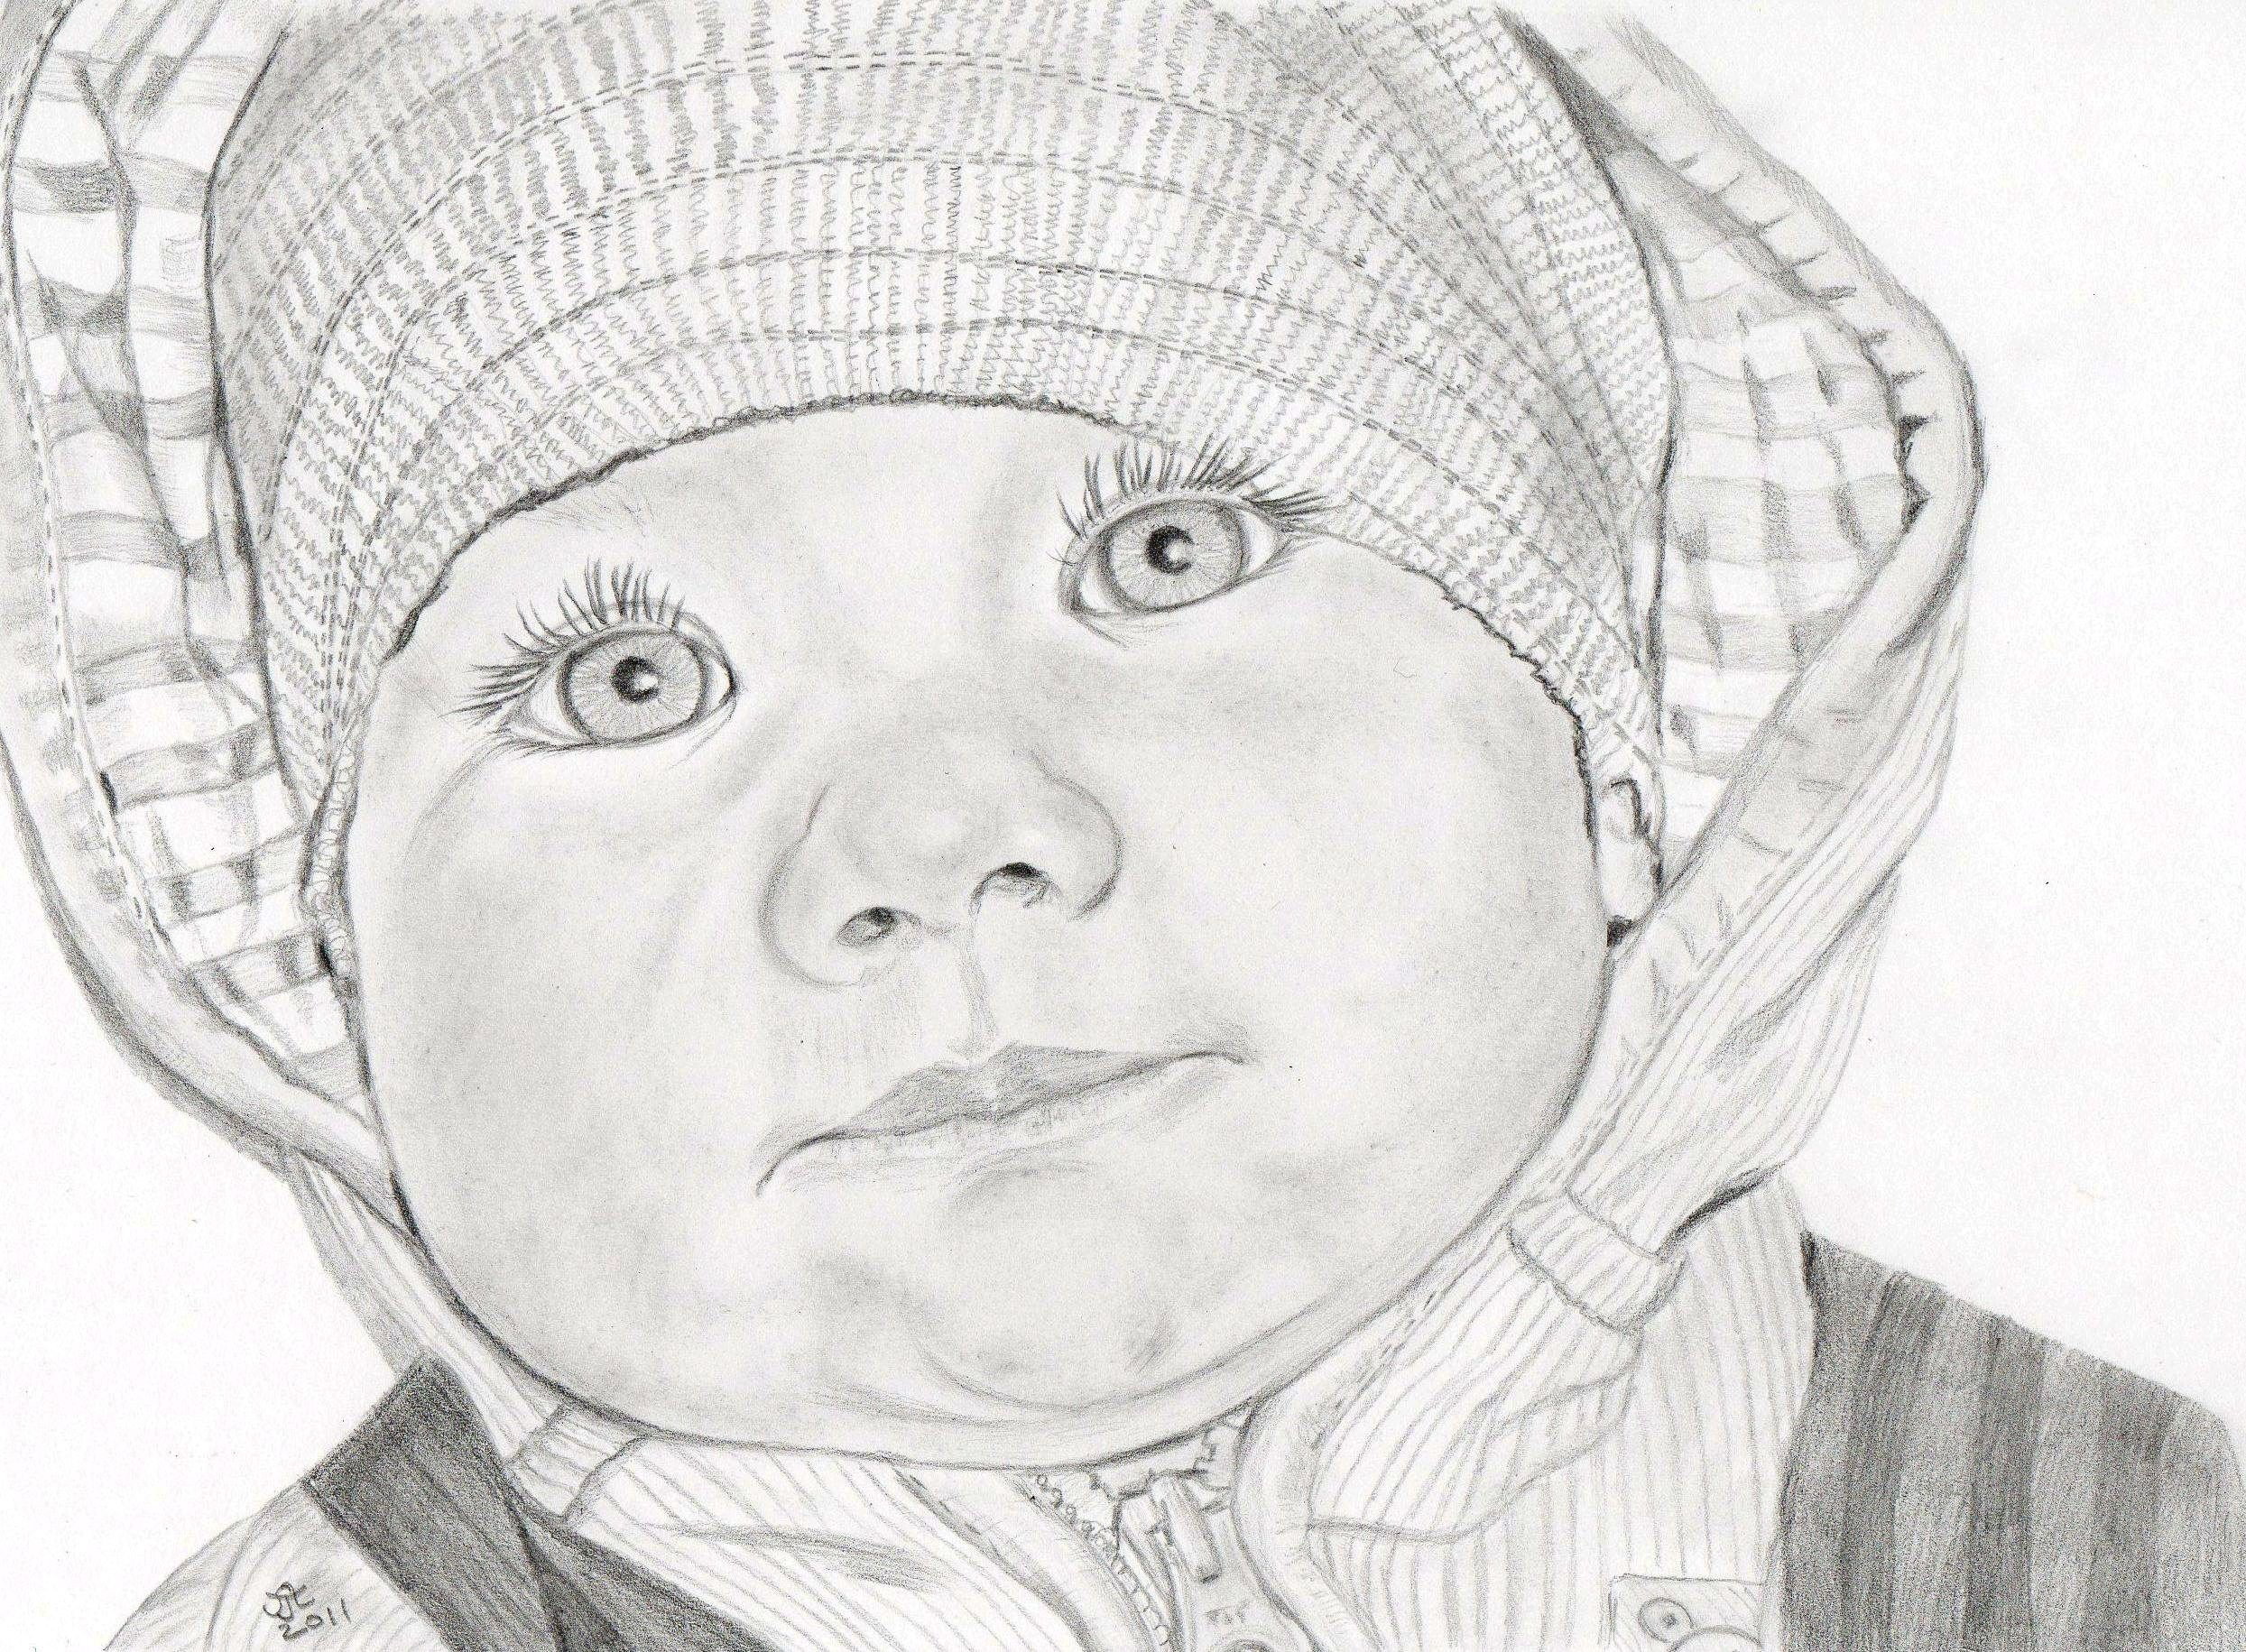 Pencil Tracing Infant Facial Features